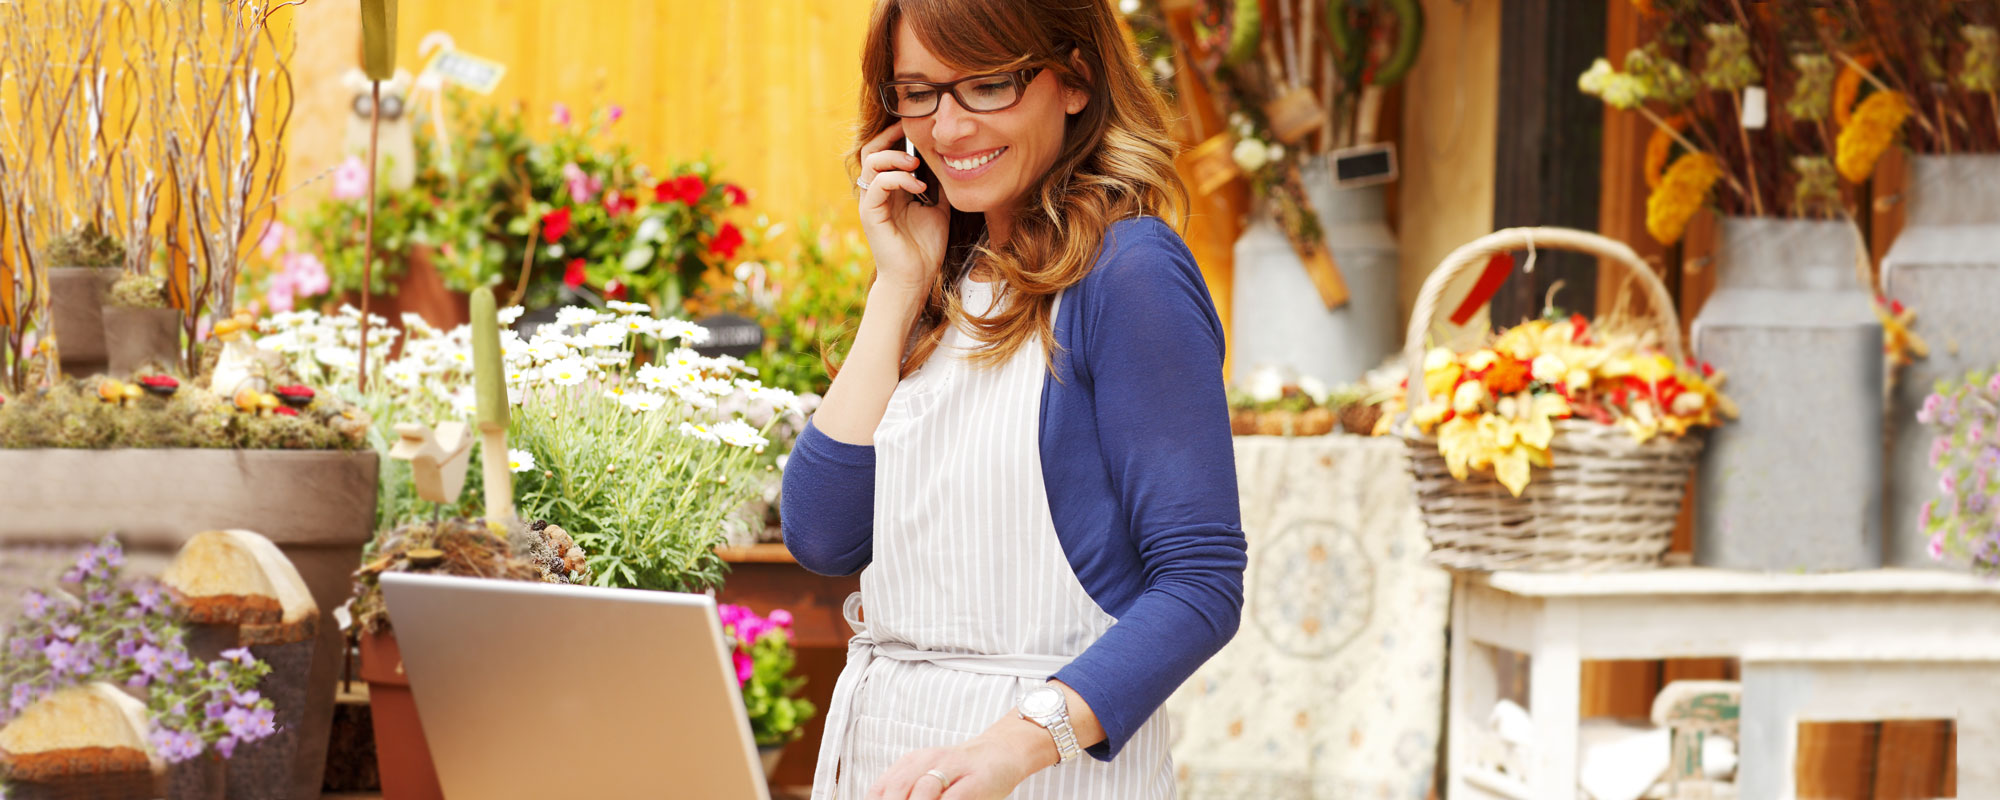 ls-activity-flower-shop-on-the-phone-2